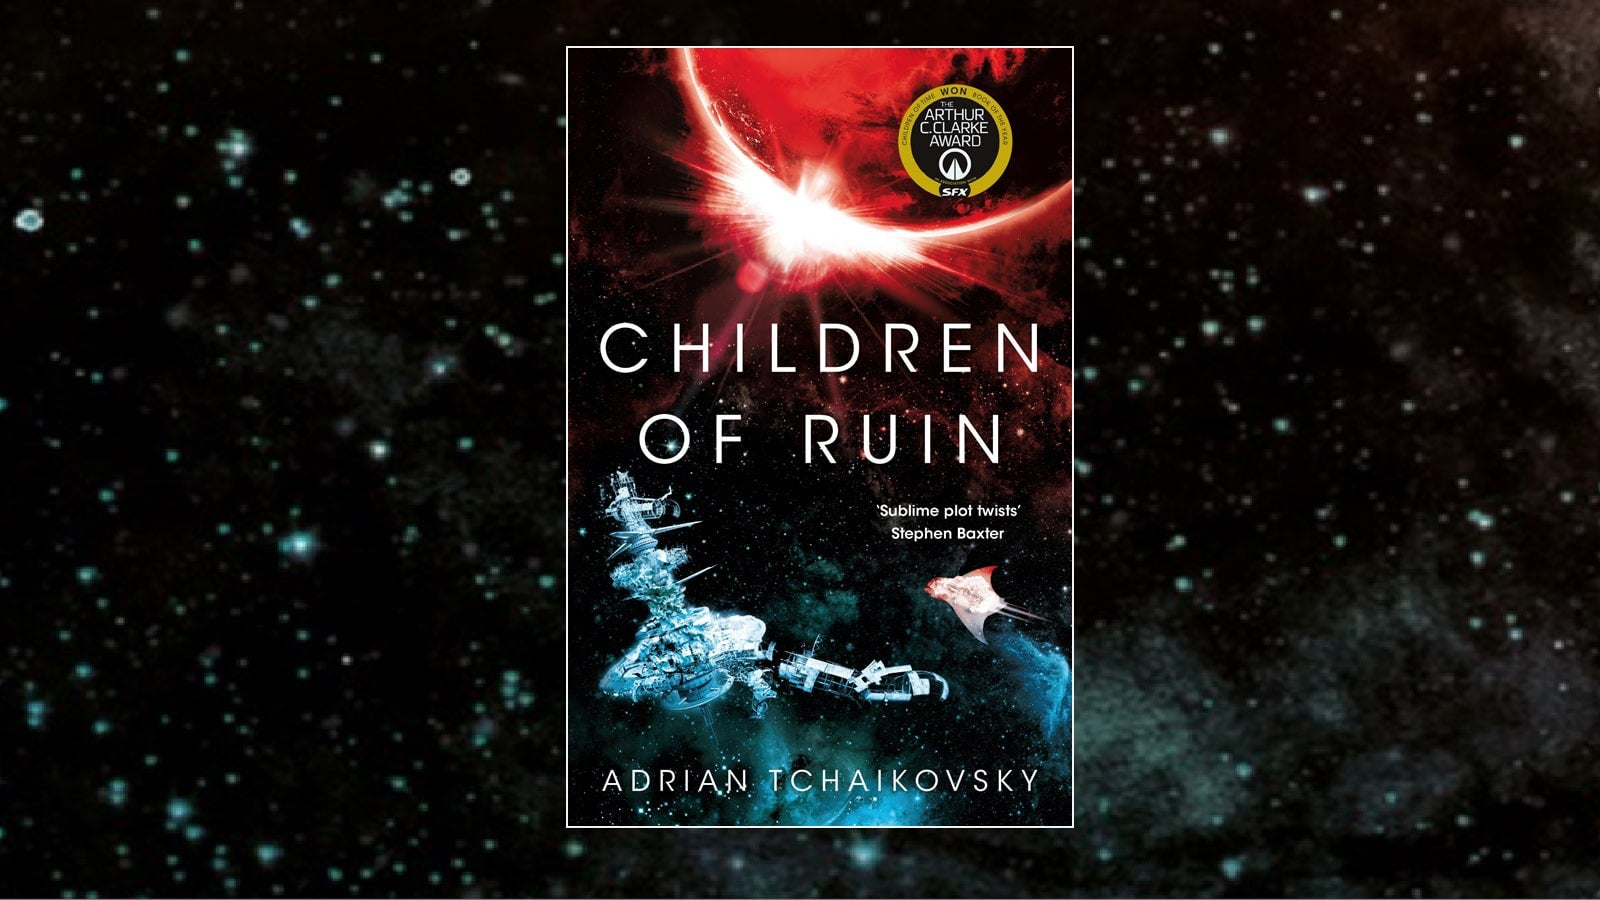 Children of Ruin book jacket against the background of a starry night